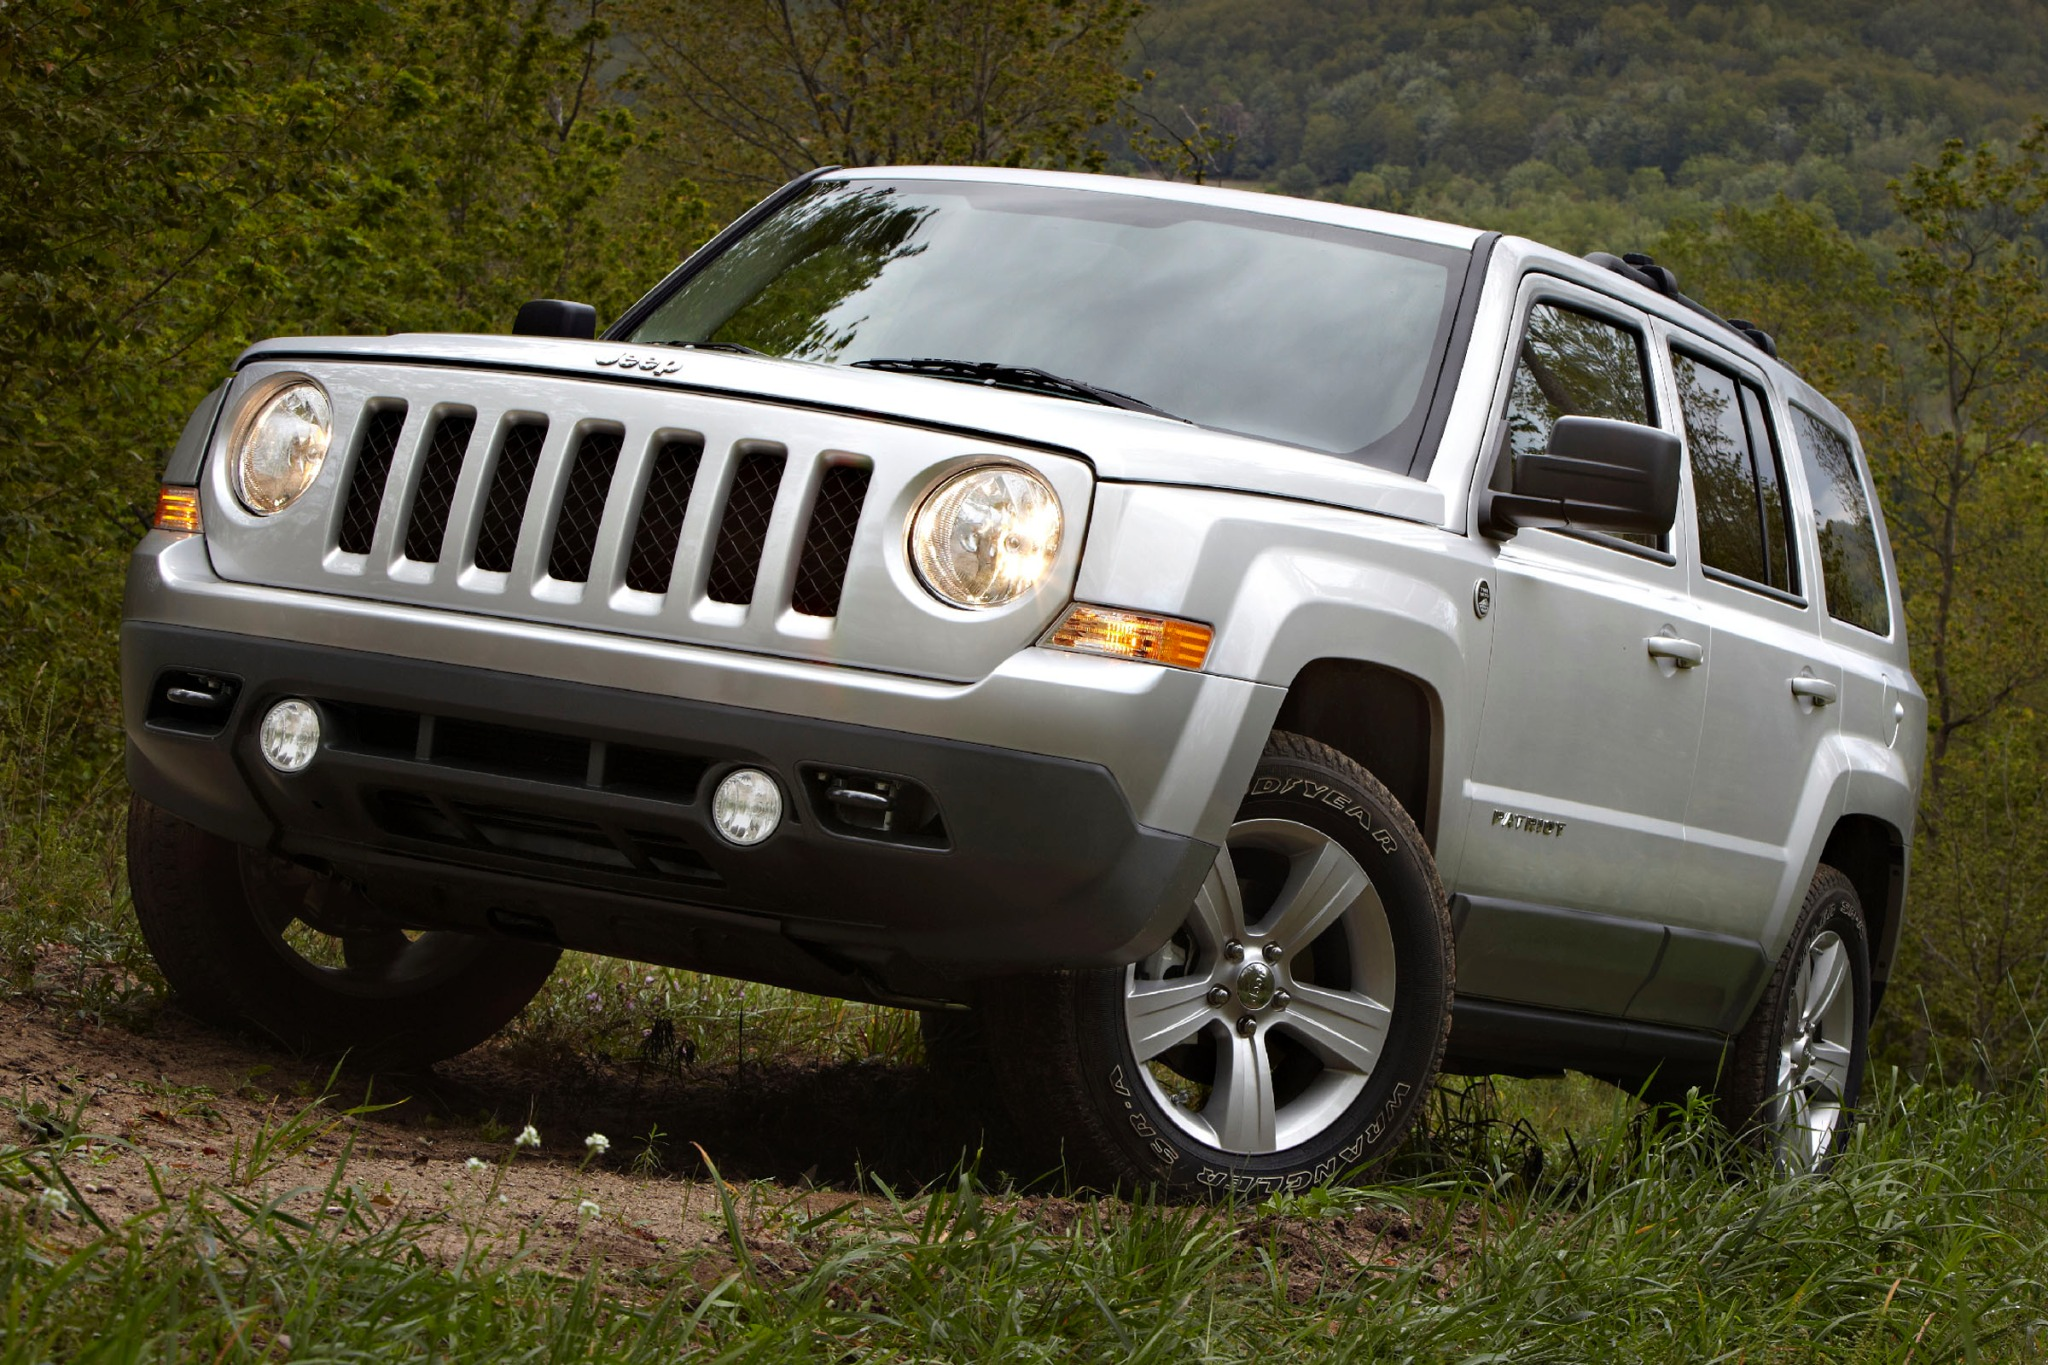 2012 Jeep Patriot Latitud interior #3